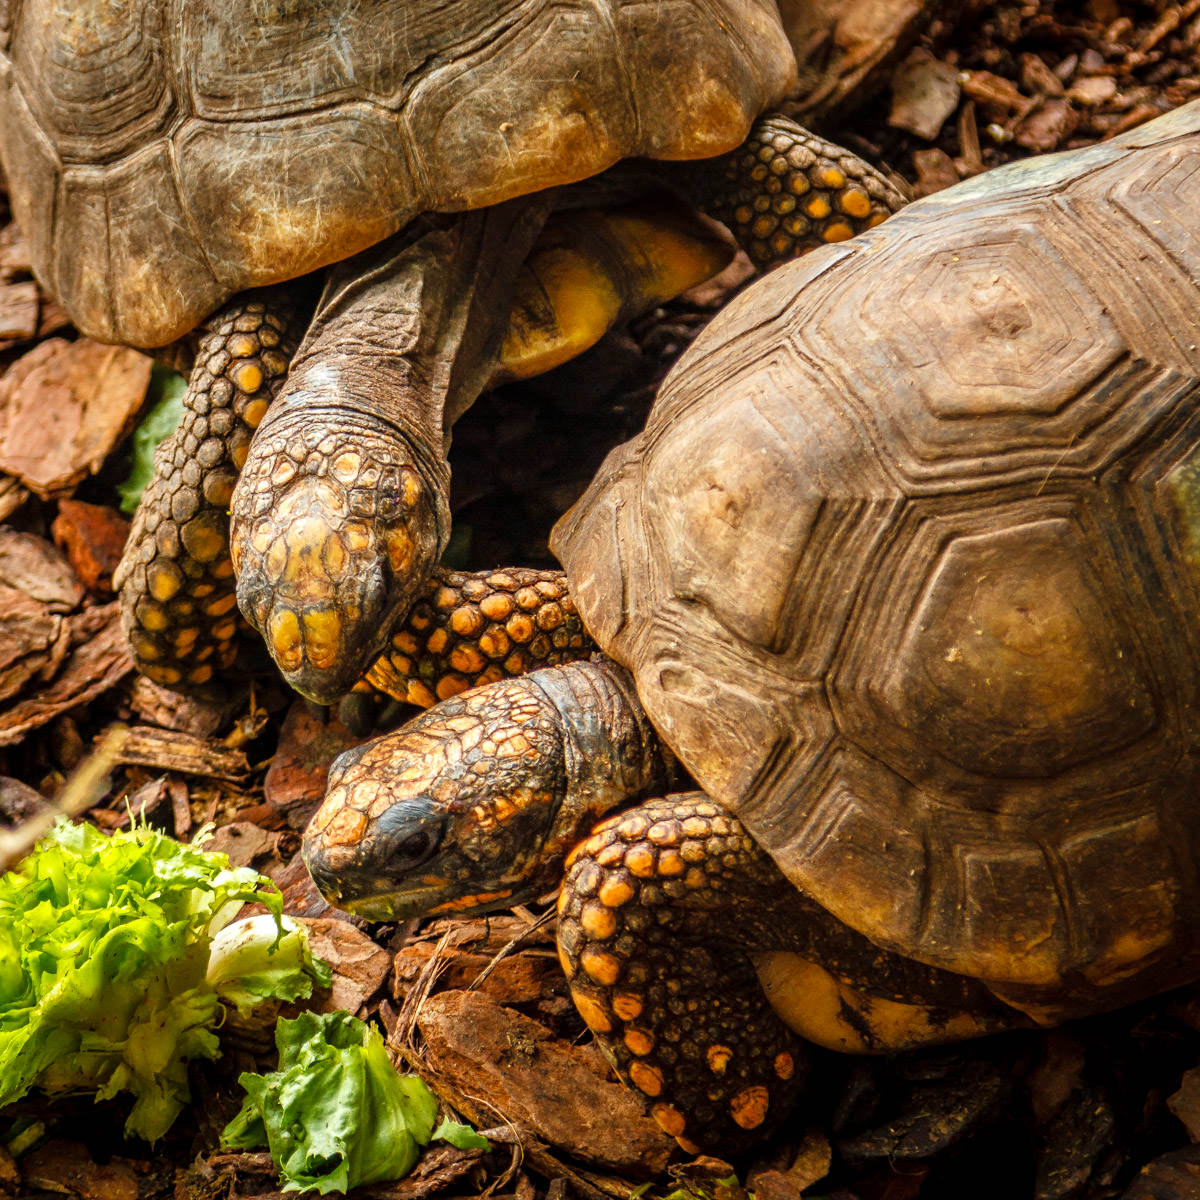 Two tortoises vie for lunch at the Dallas World Aquarium.